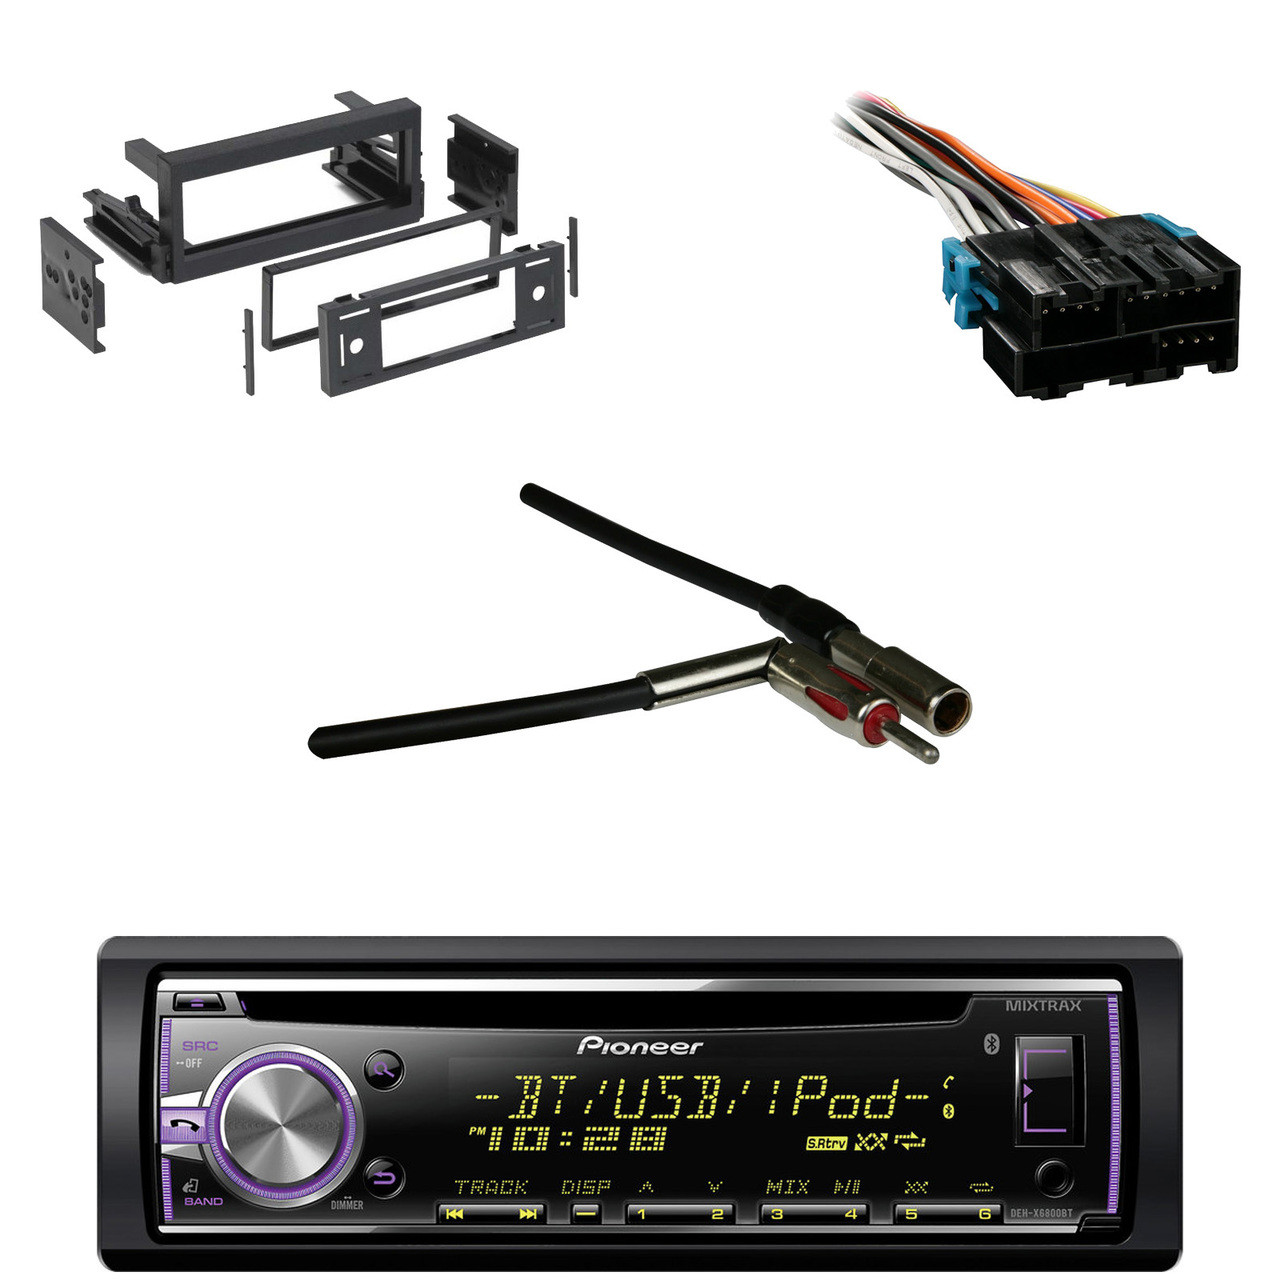 hight resolution of bluetooth pioneer cd car receiver gm wire harness antenna adapter metra din kit road entertainment